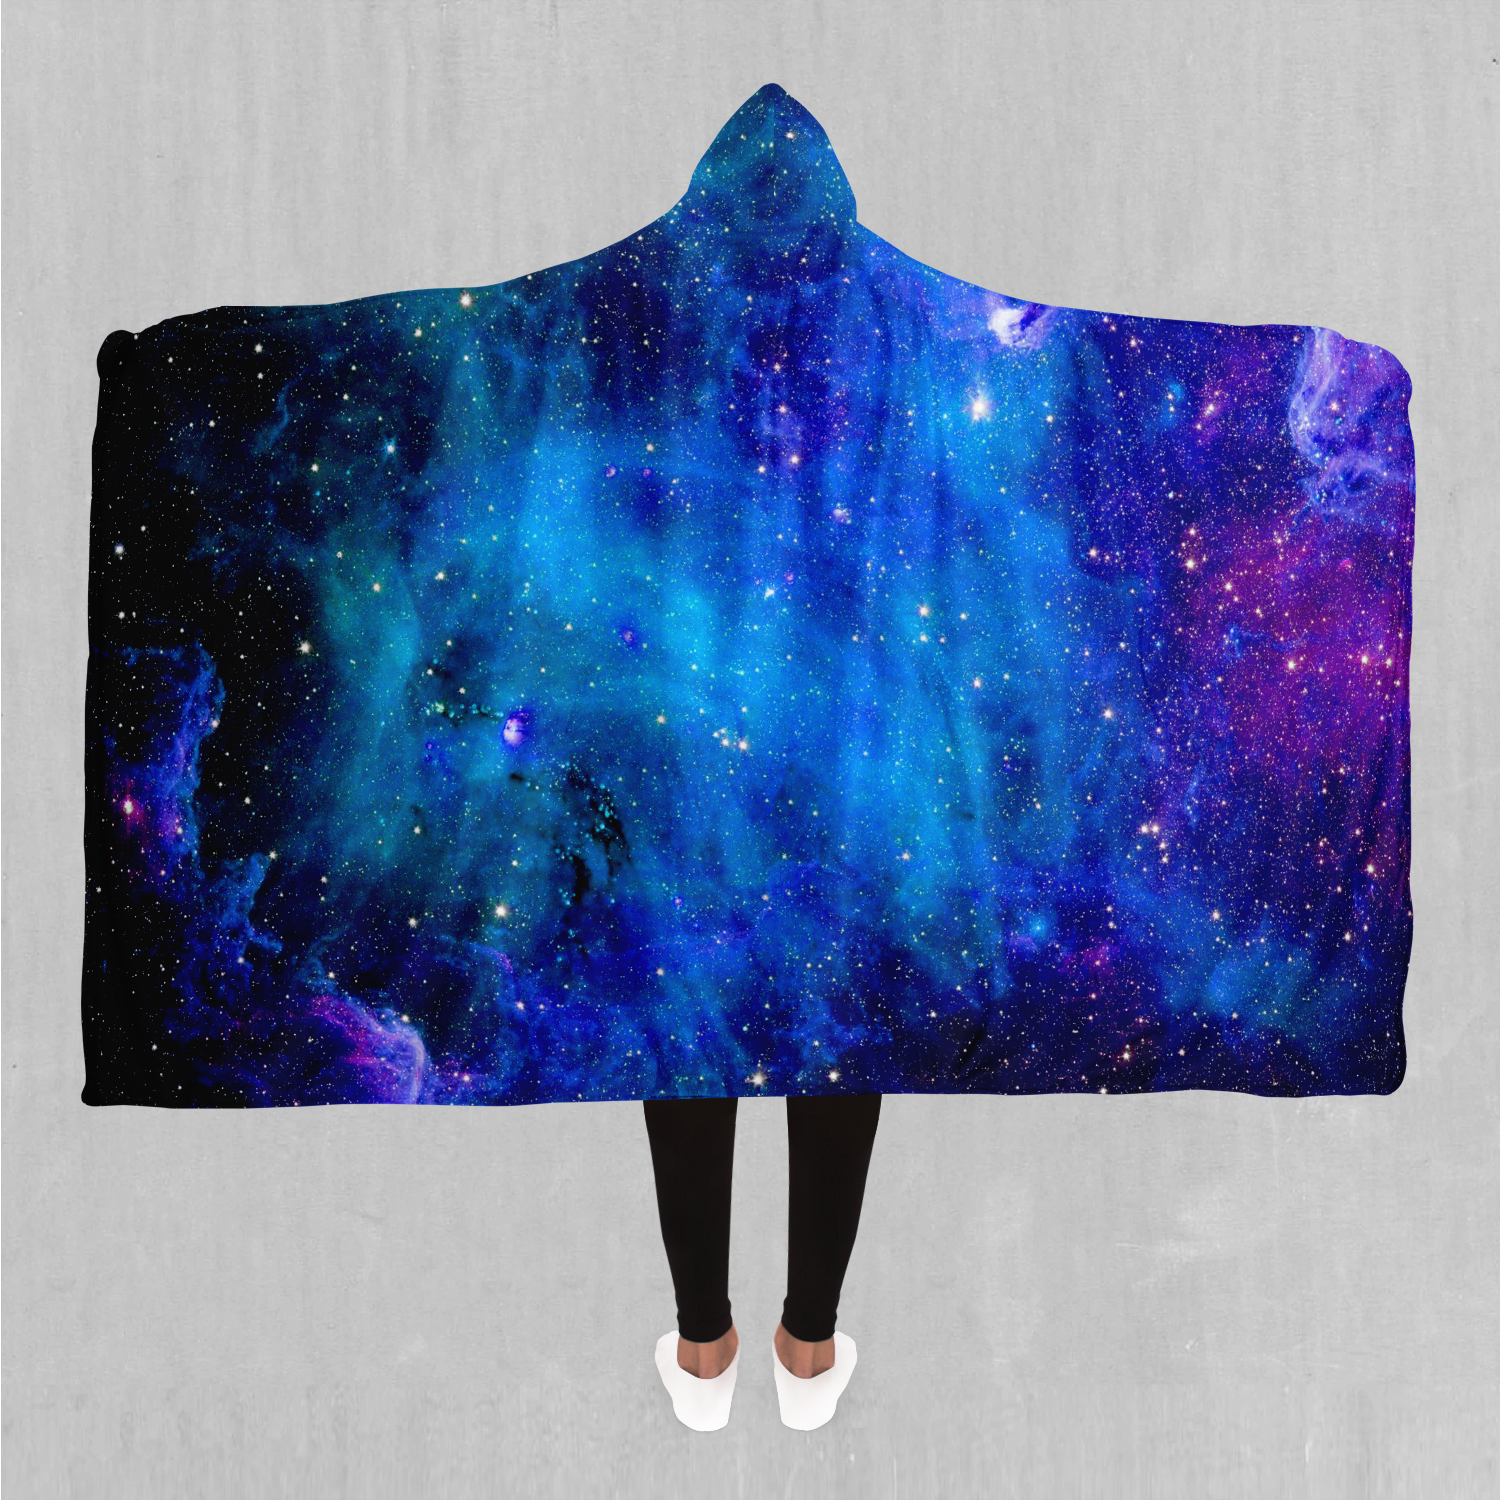 Stardust Hooded Blanket - EDM Rave Festival Street Wear Abstract Apparel